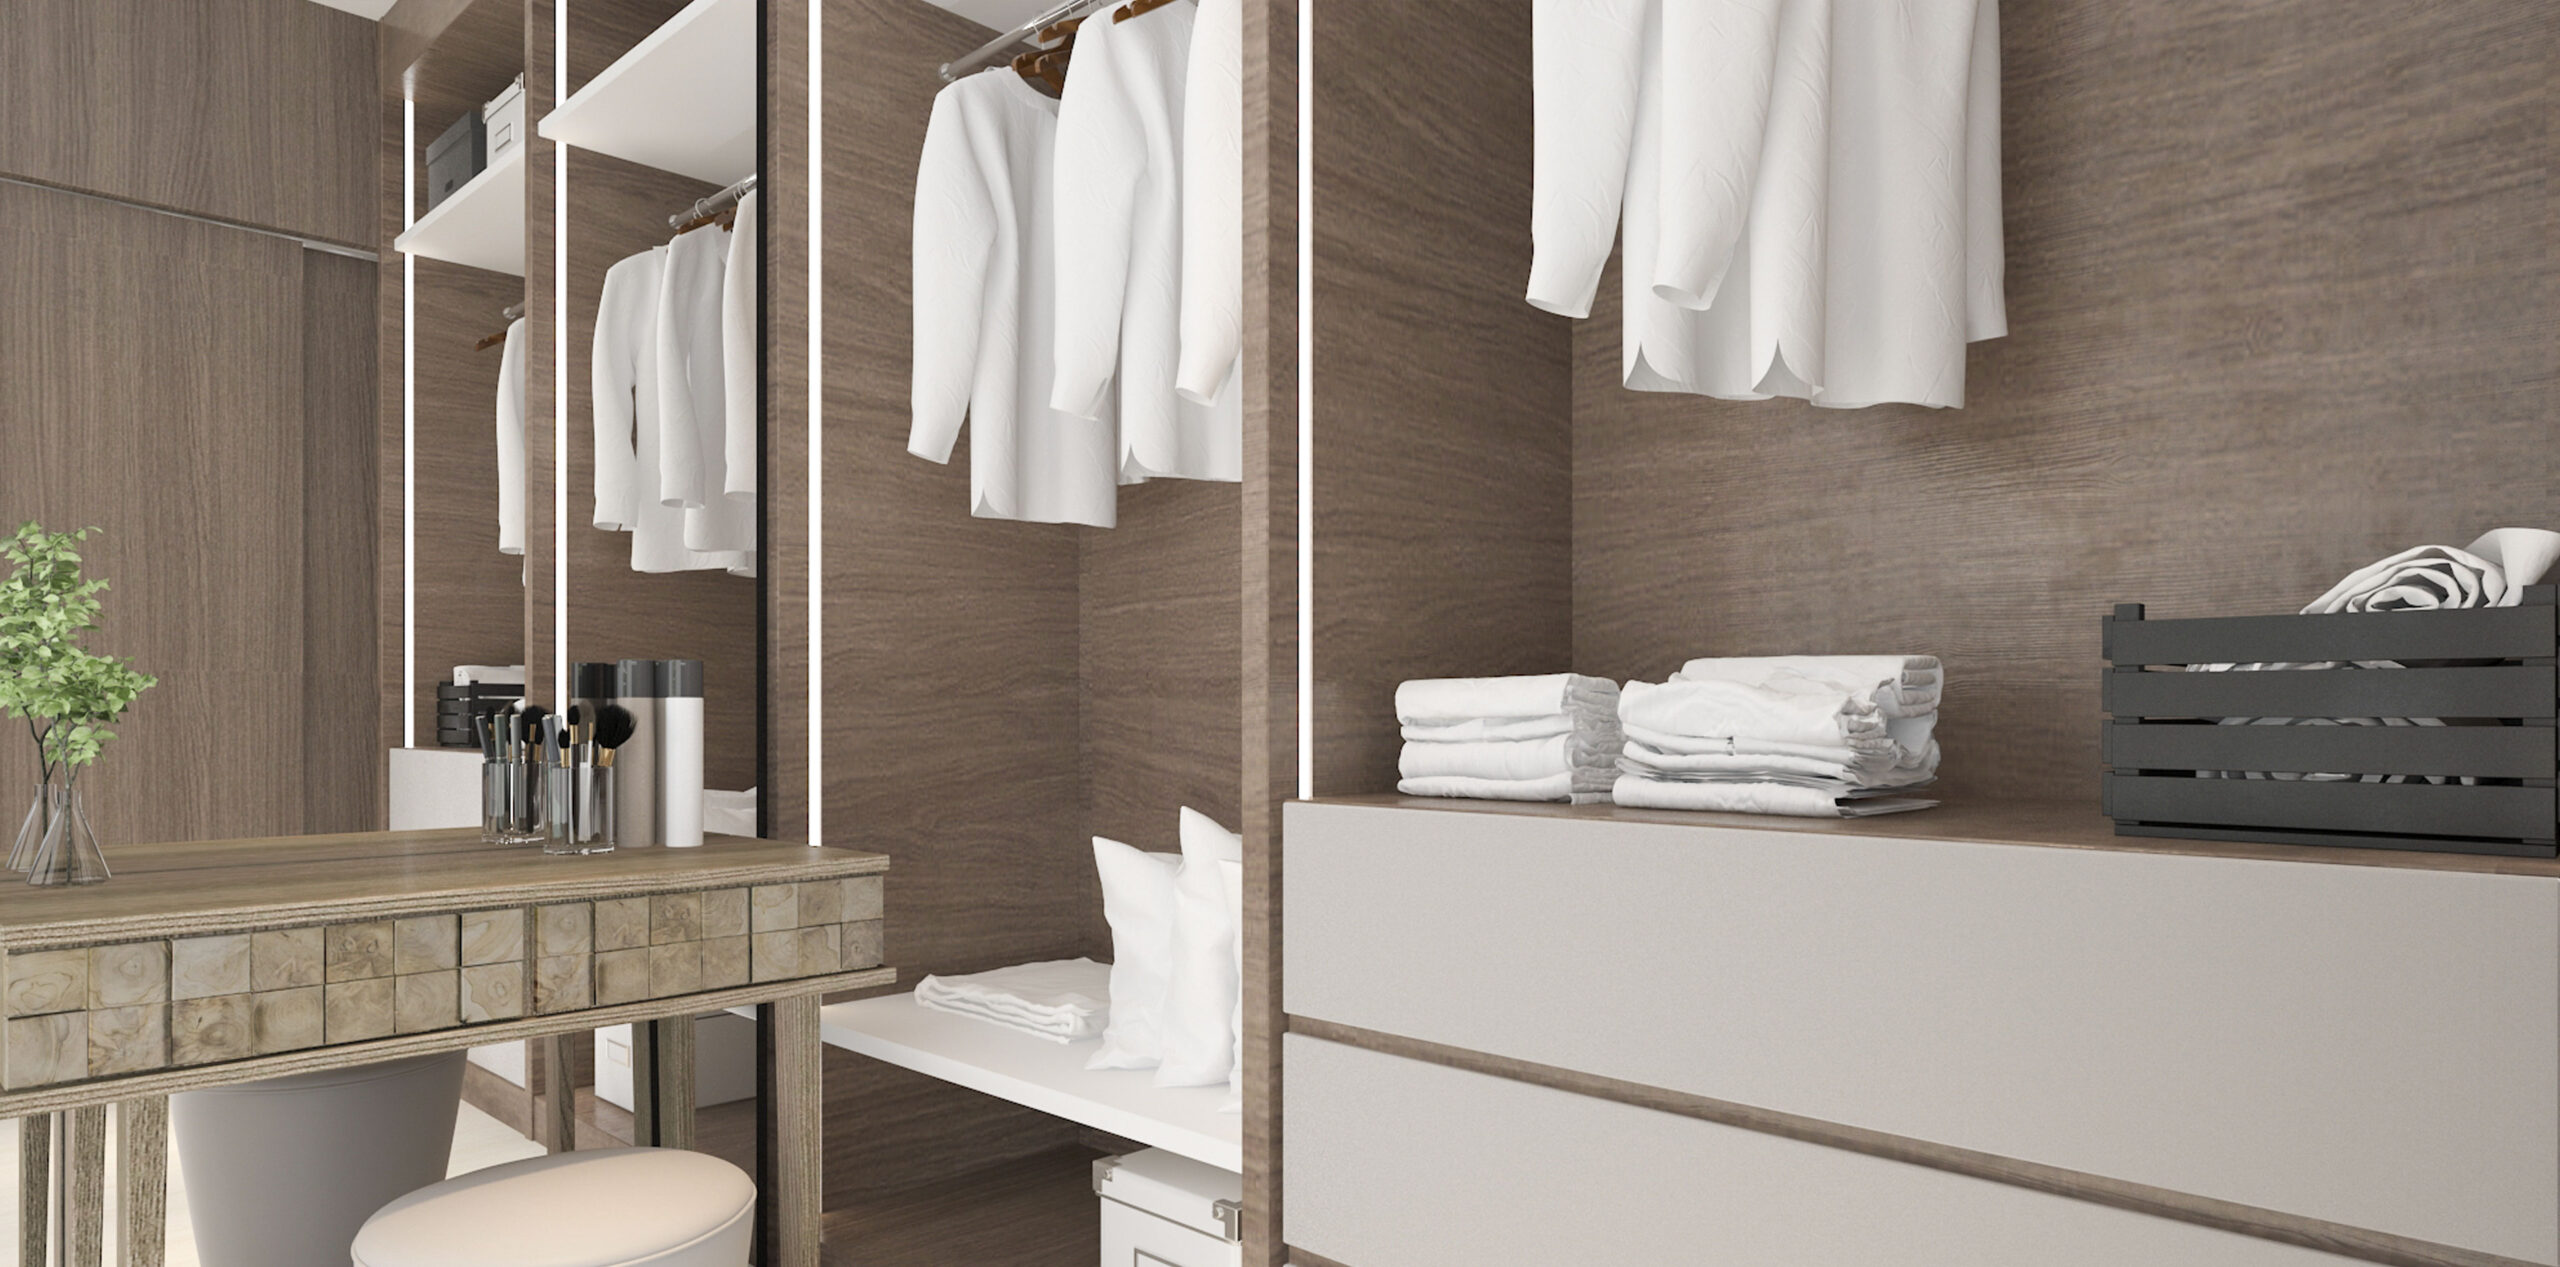 Wardrobe with clothes, towels and pillows next to a make up area and a mirror.